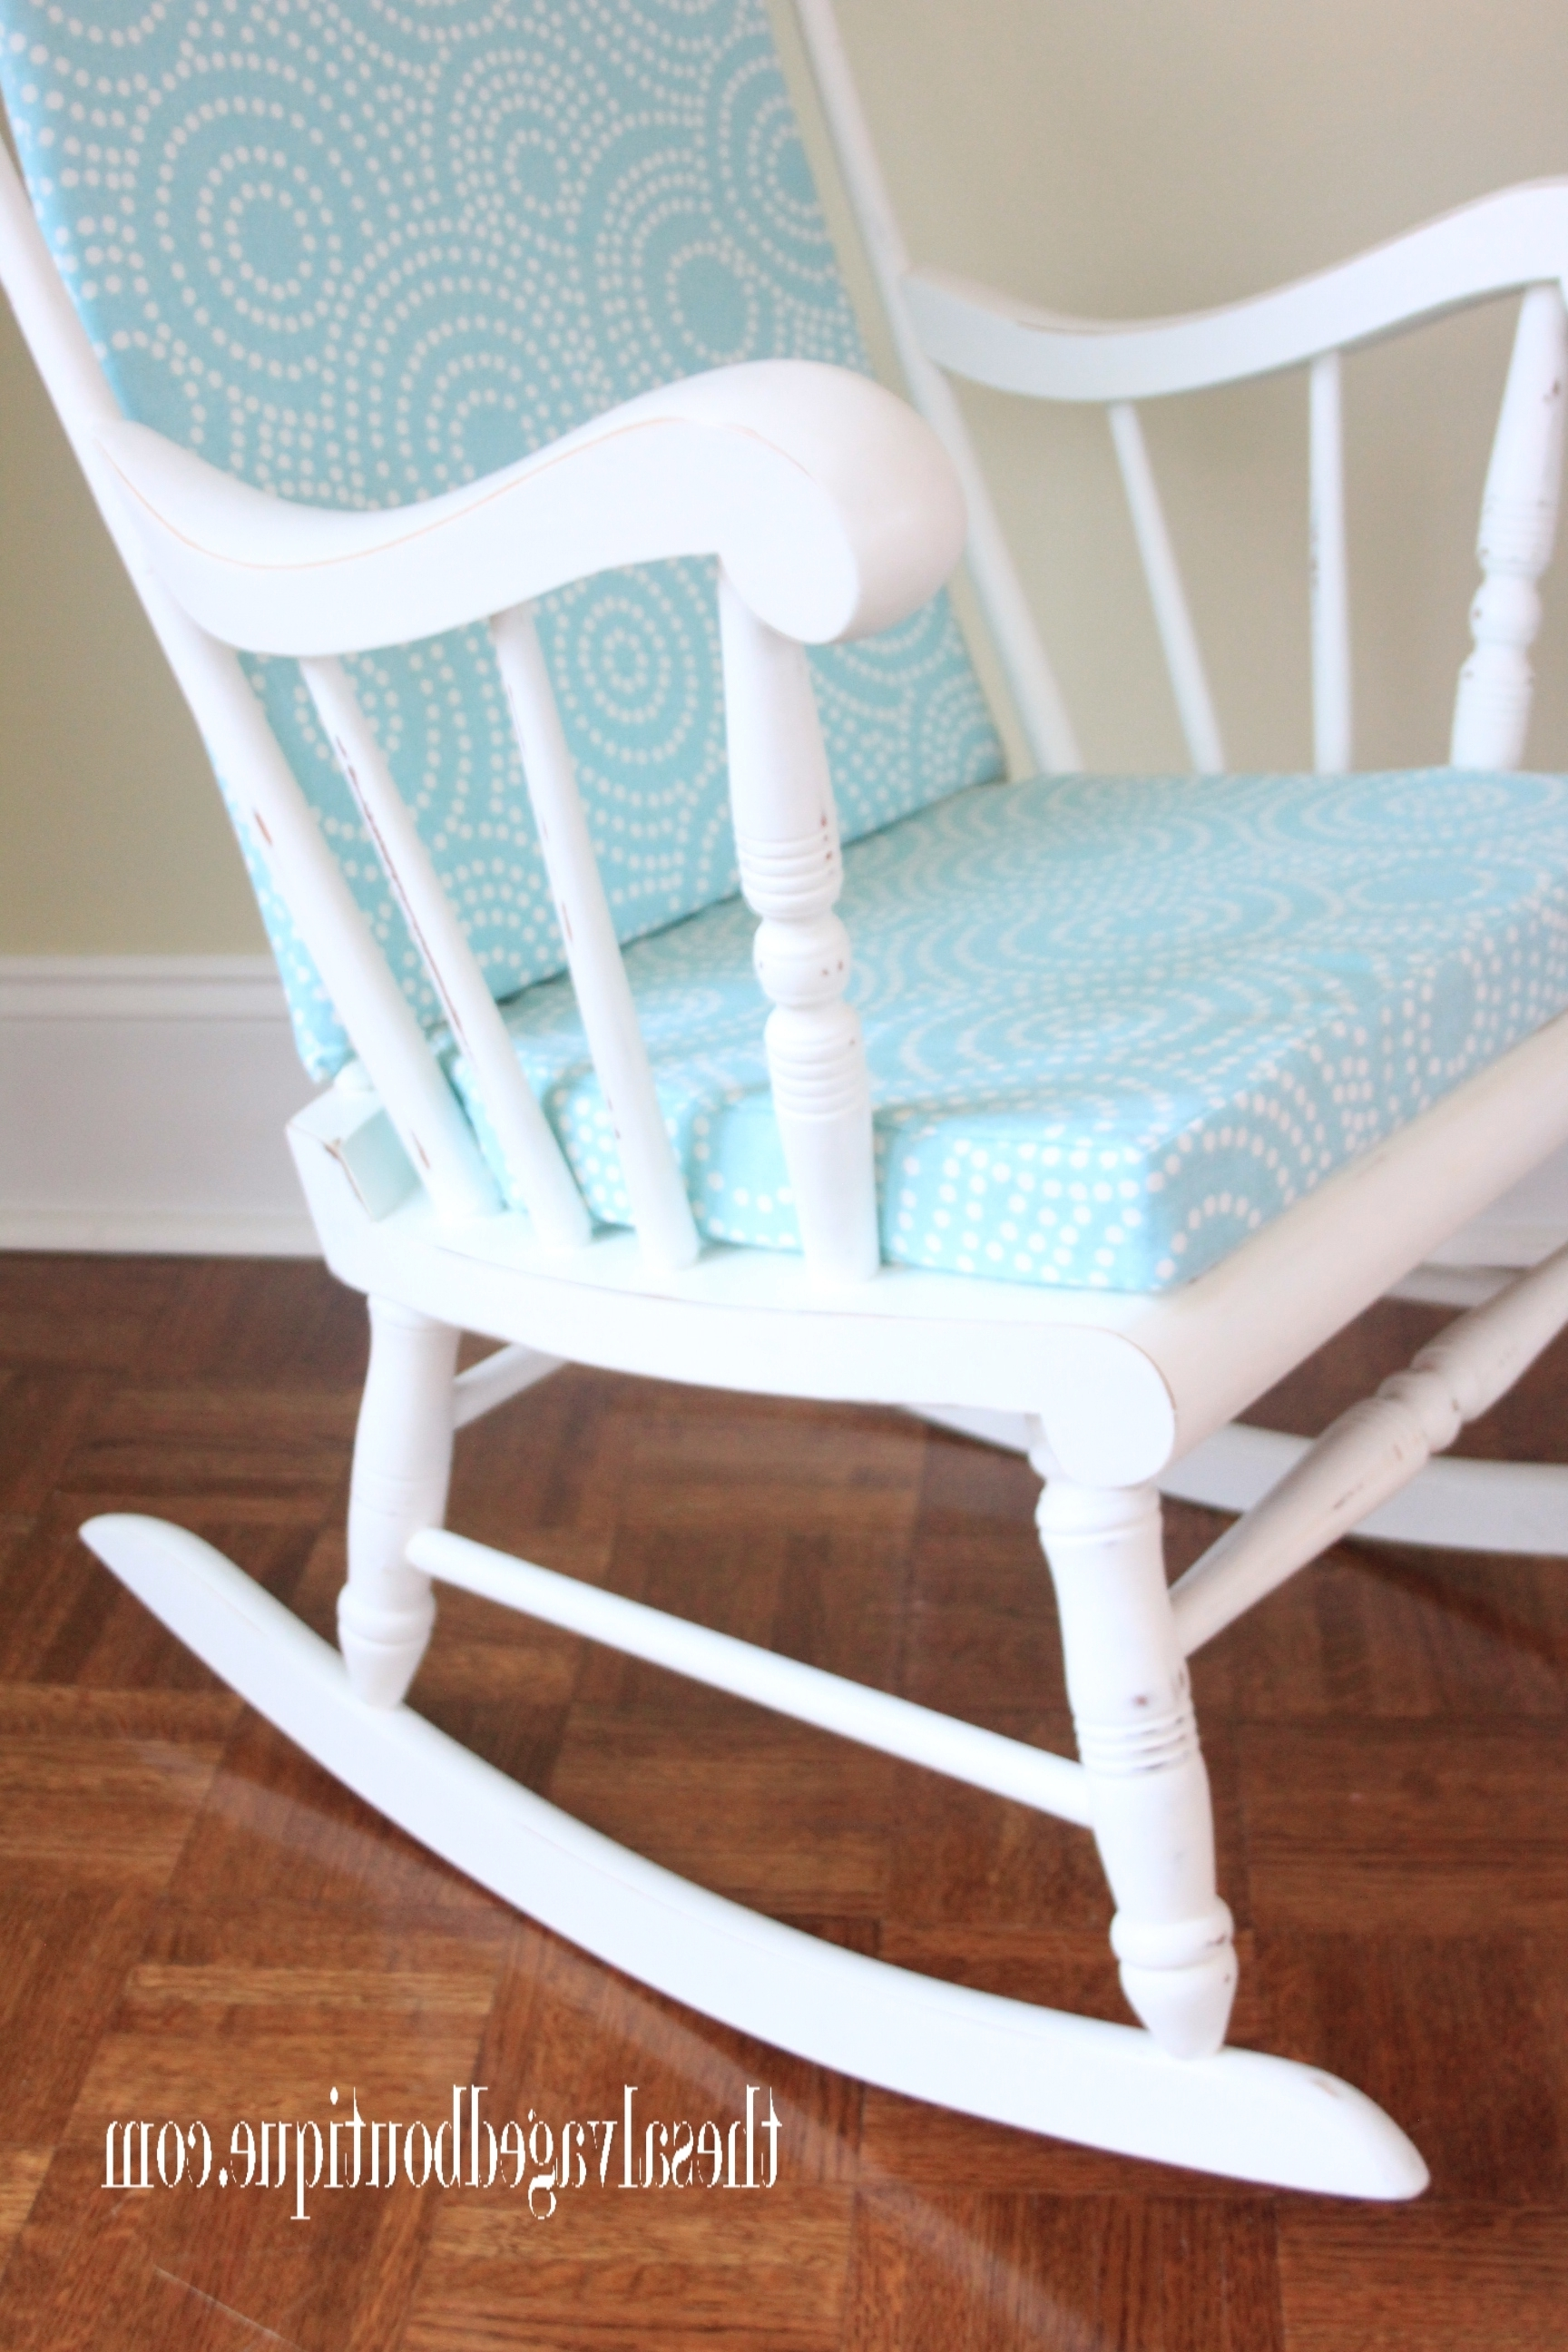 Upcycled Rocking Chairs For 2017 Grandpa's Rocking Chair Brightened Up For New Baby Nursery (View 3 of 15)